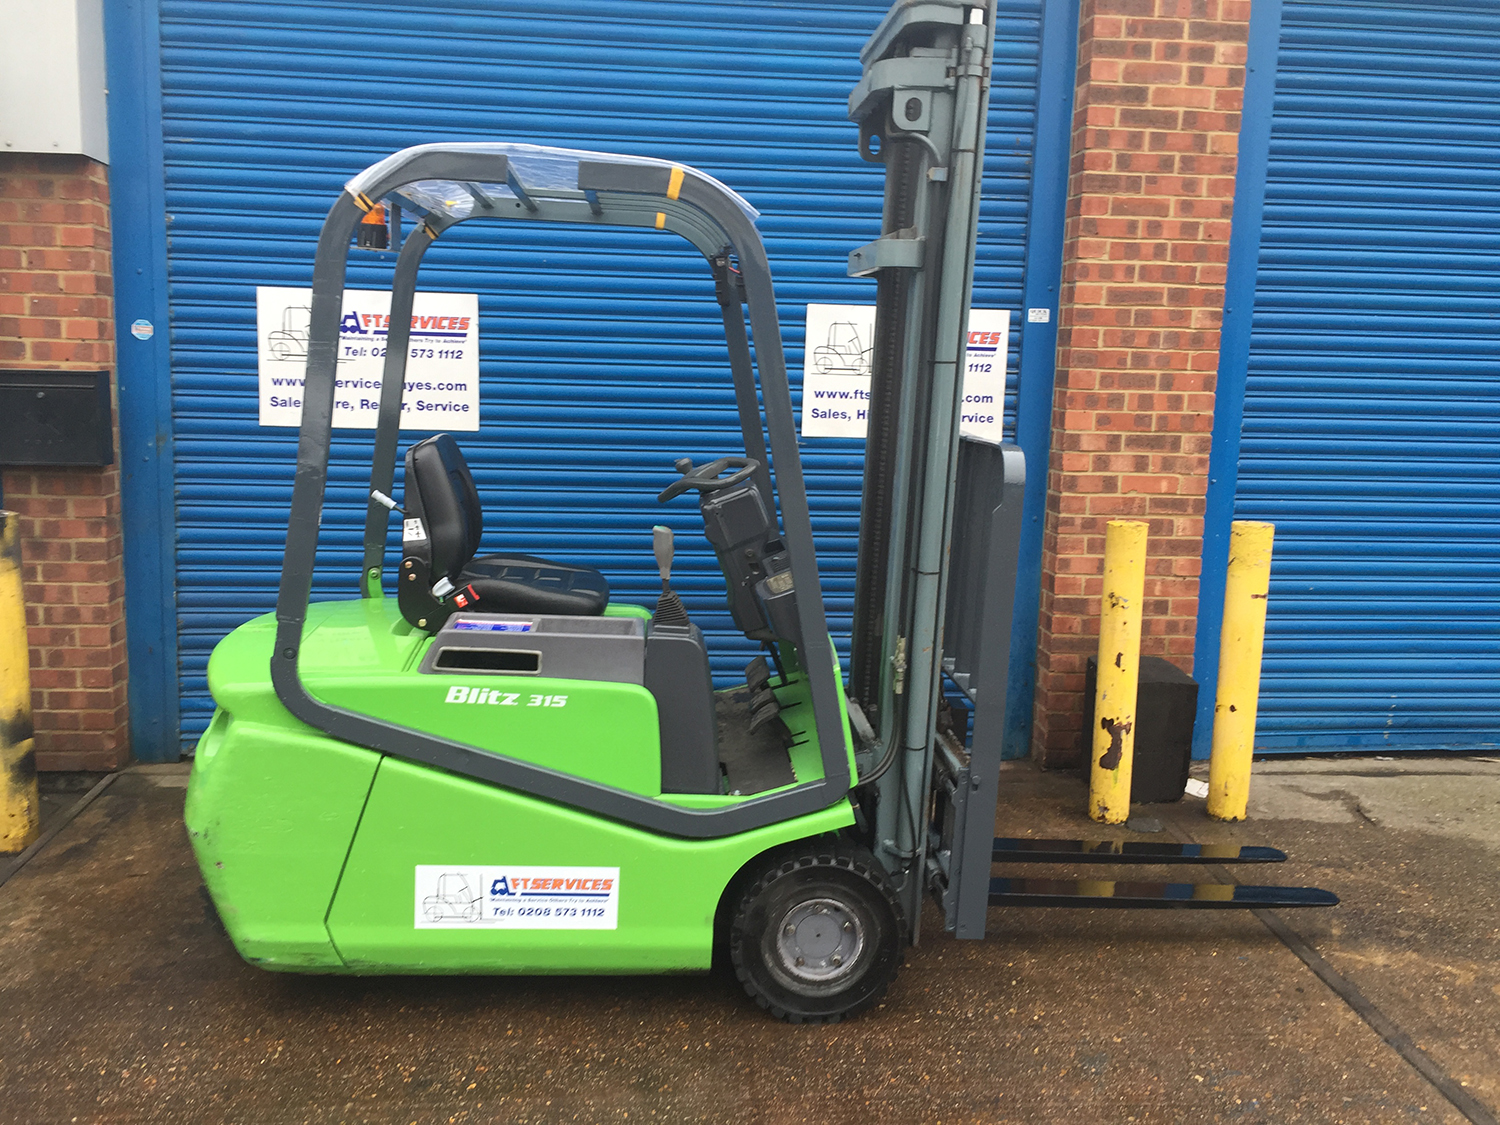 Used forklifts for sale | Buy second-hand forklift trucks | FT Services